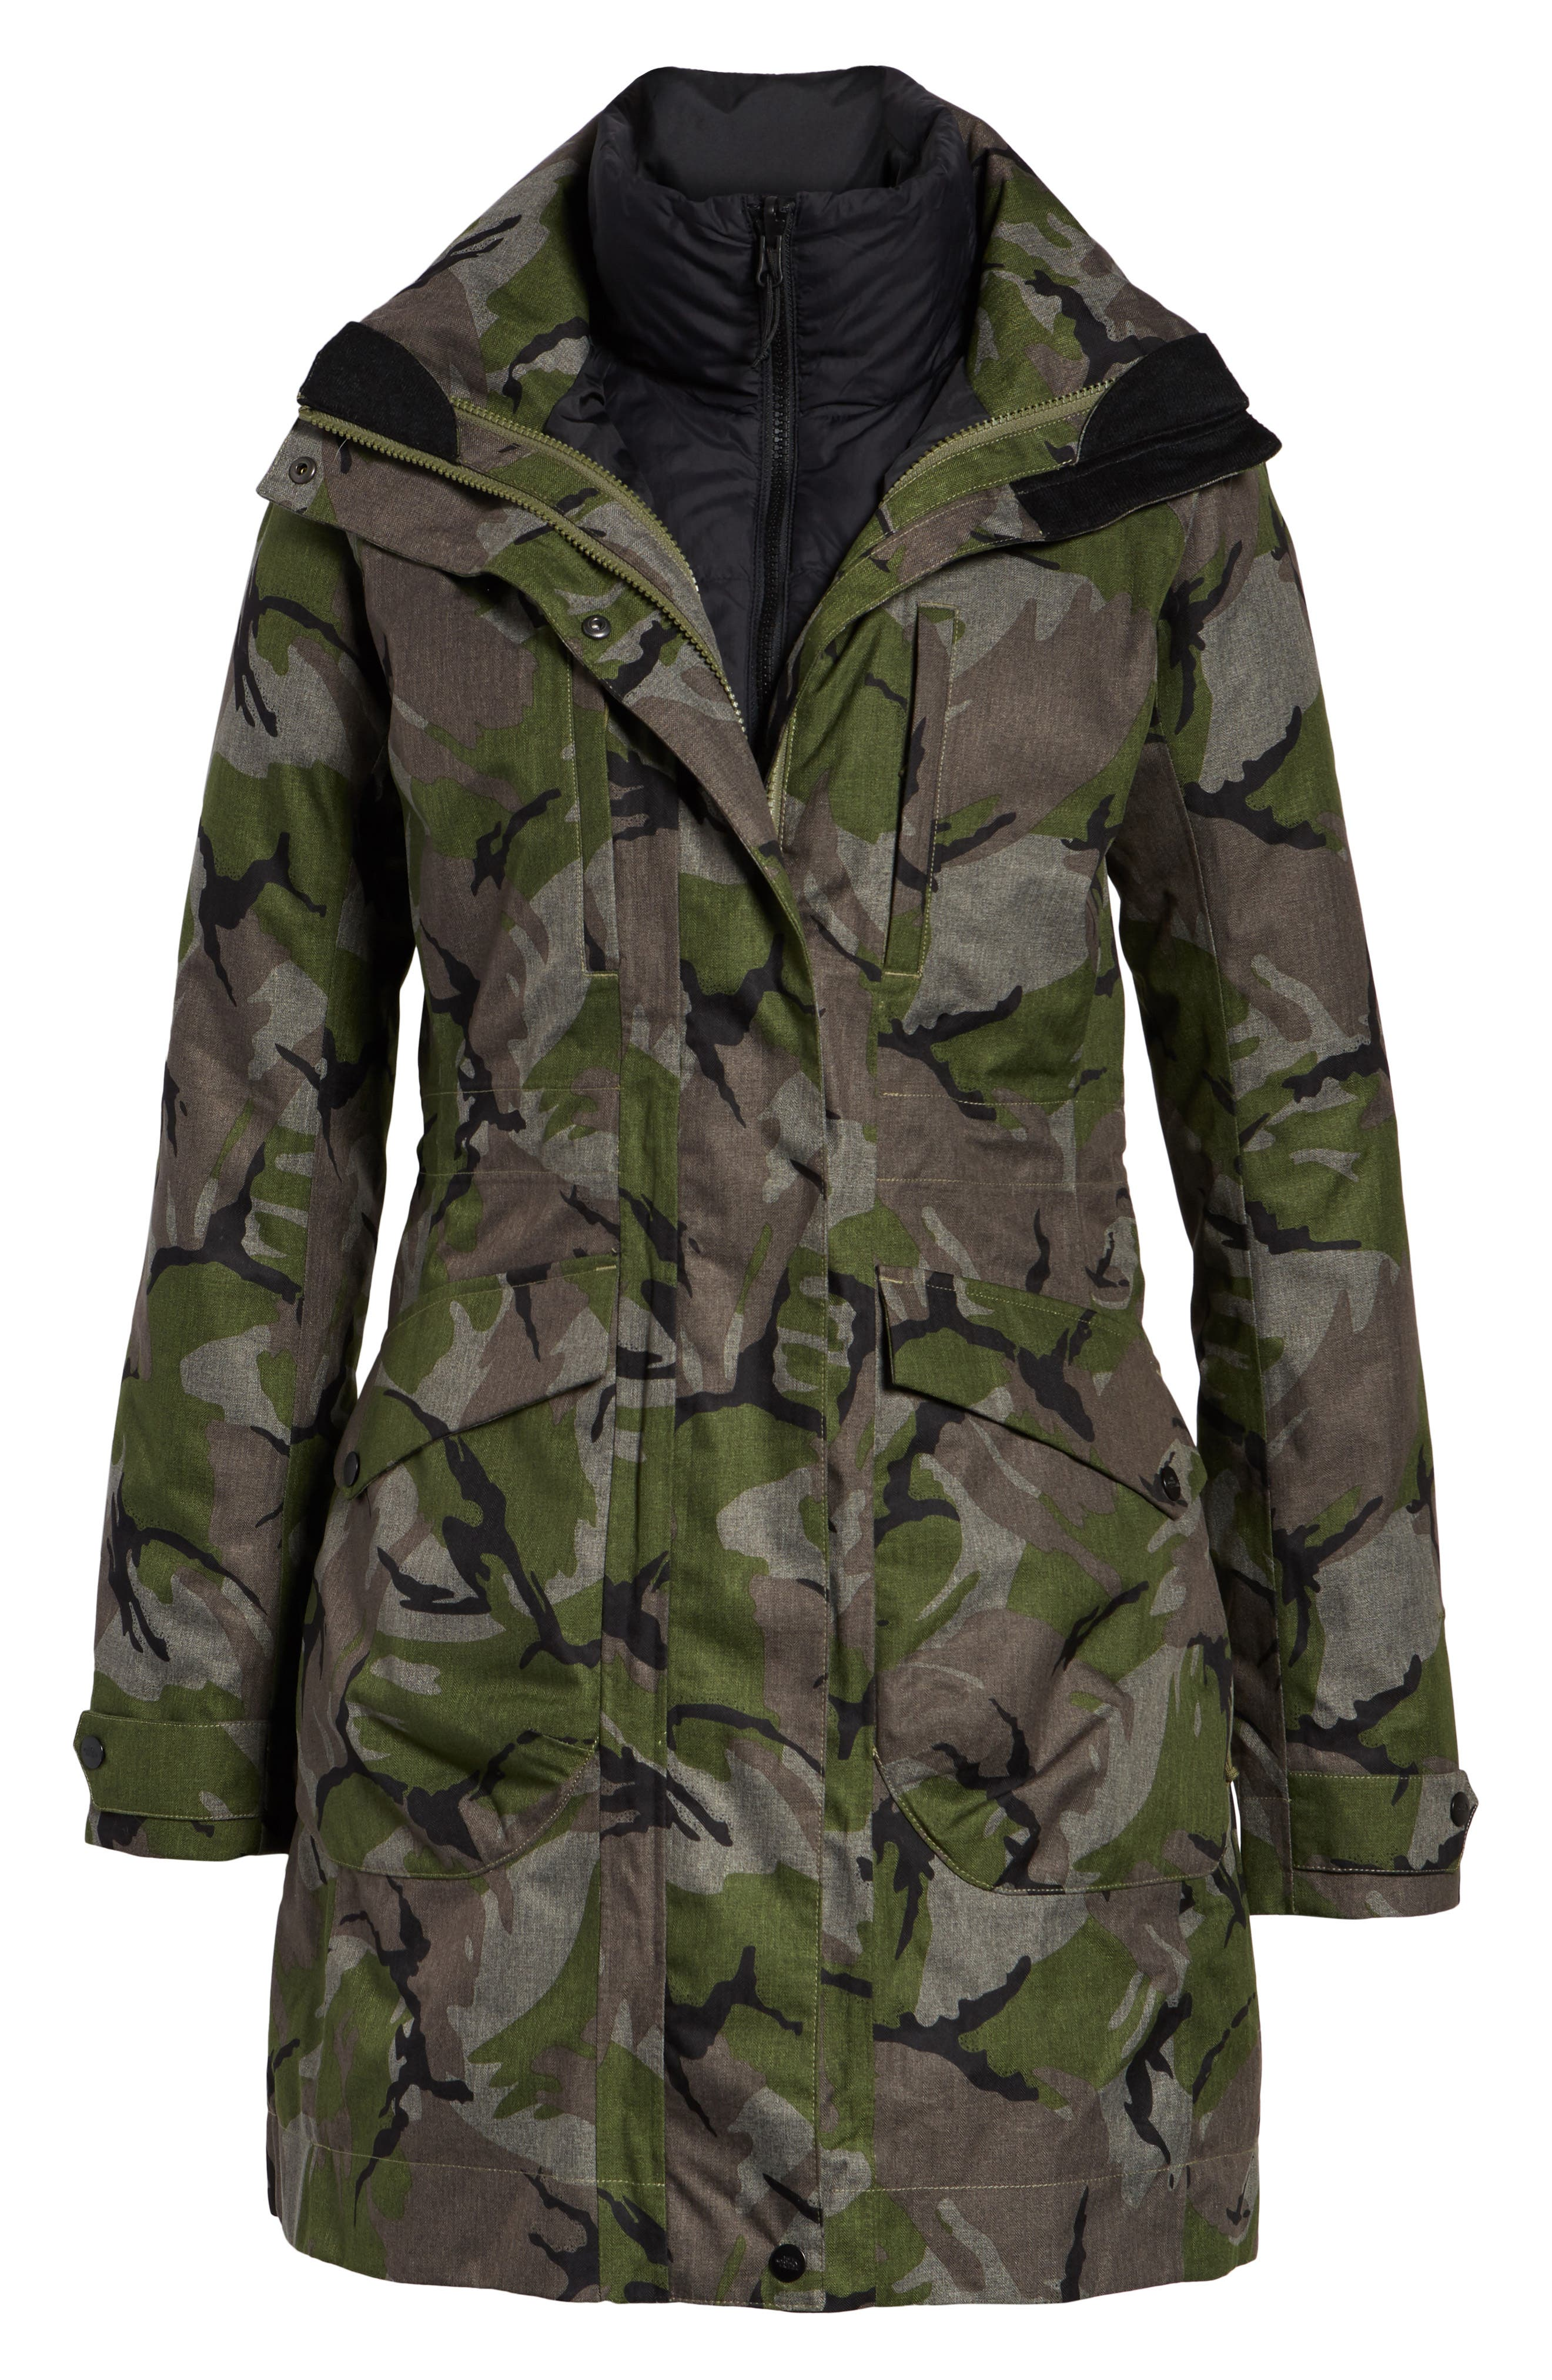 Outer Boroughs 3-in-1 TriClimate<sup>®</sup> Waterproof Jacket with Faux Fur Trim,                             Alternate thumbnail 6, color,                             301